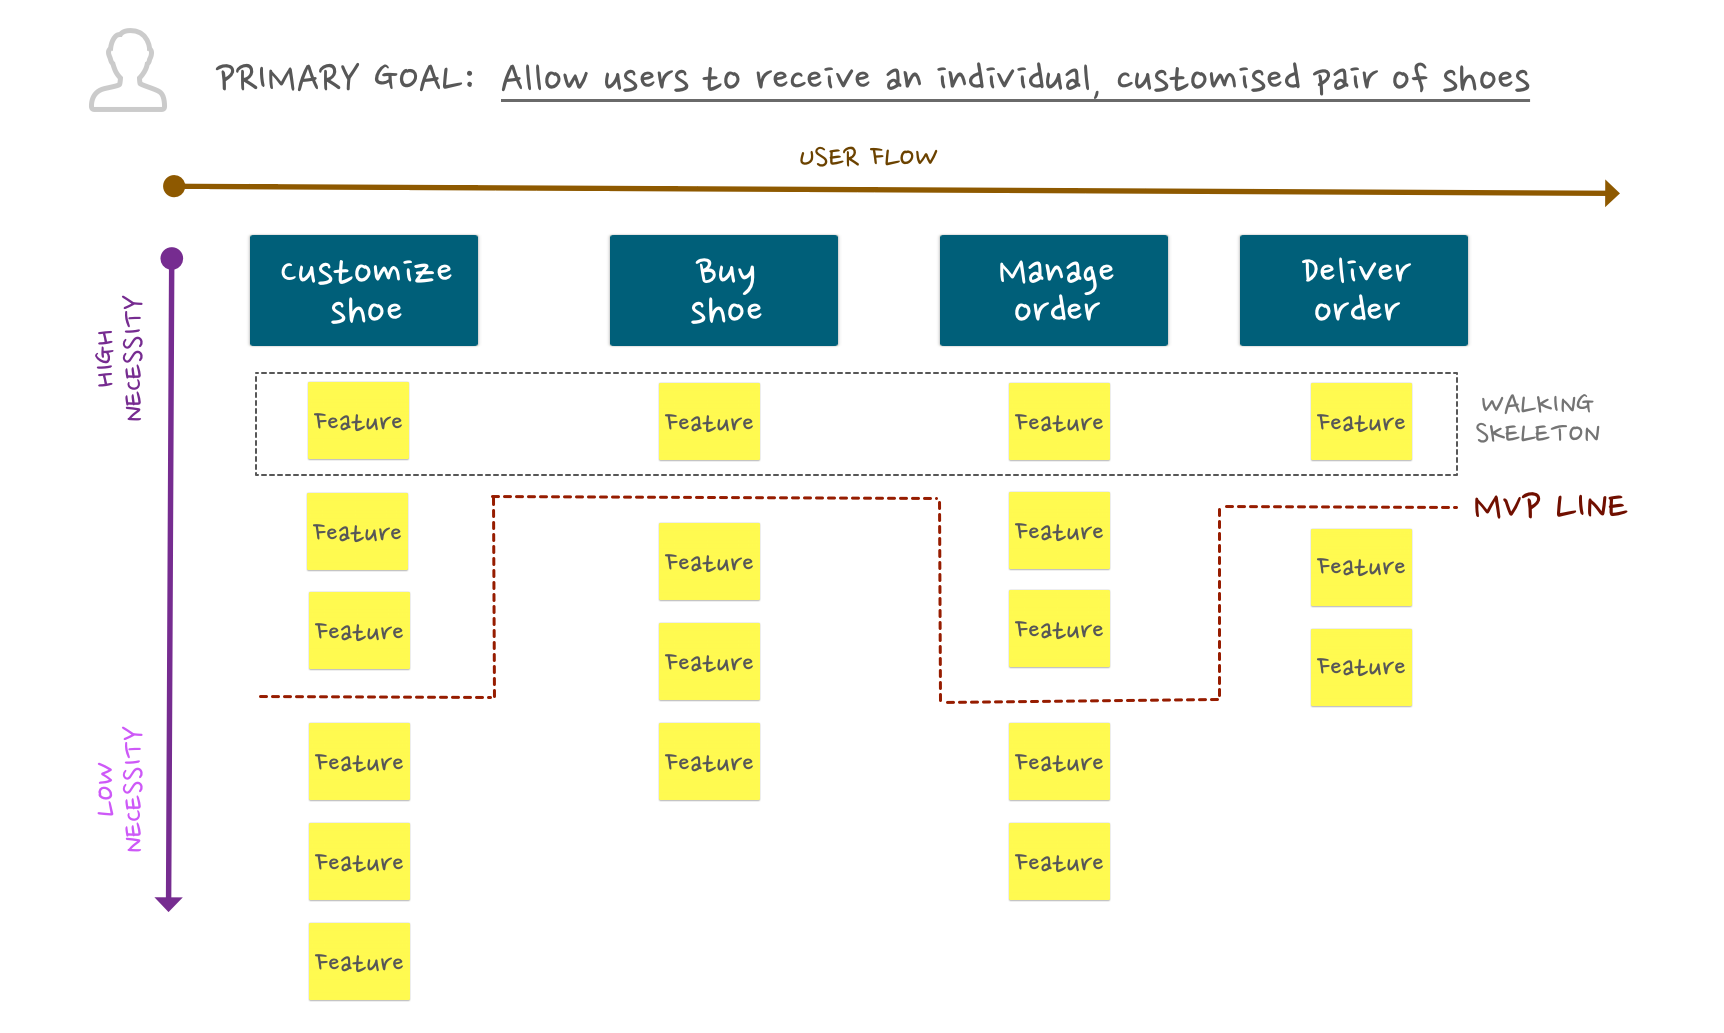 Build Minimum Viable Product (MVP) with Story Mapping - Define MVP on